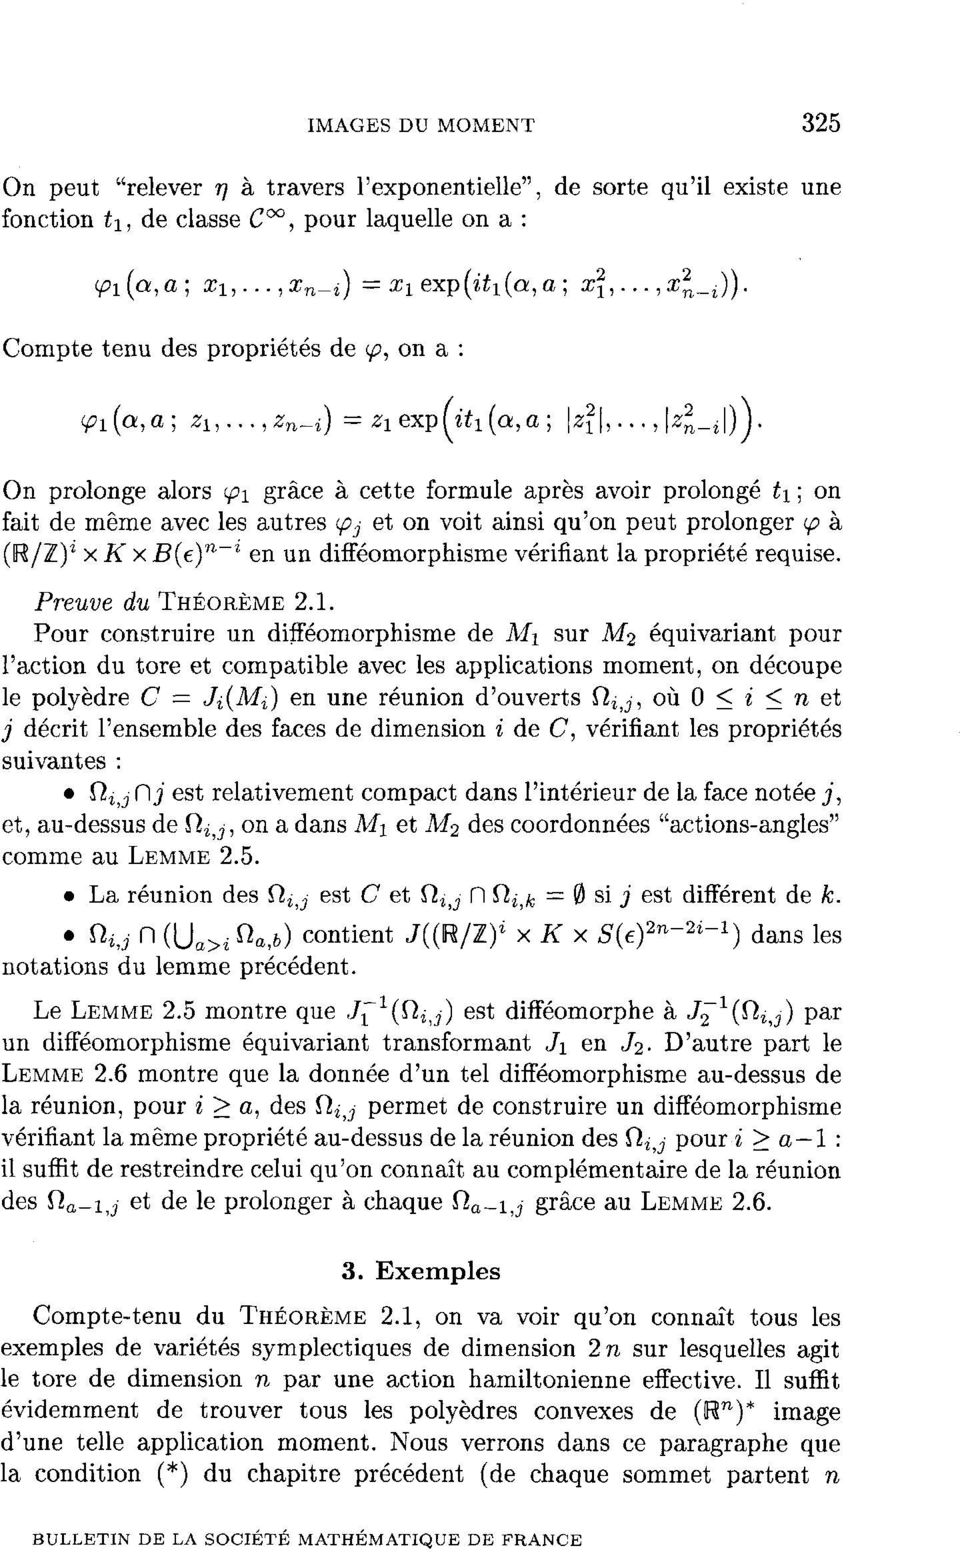 On prolonge alors <^i grâce à cette formule après avoir prolongé t^ ; on fait de même avec les autres ^ et on voit ainsi qu'on peut prolonger (p à (H/Z) 1 x K x BÇe)^ en un difféomorphisme vérifiant